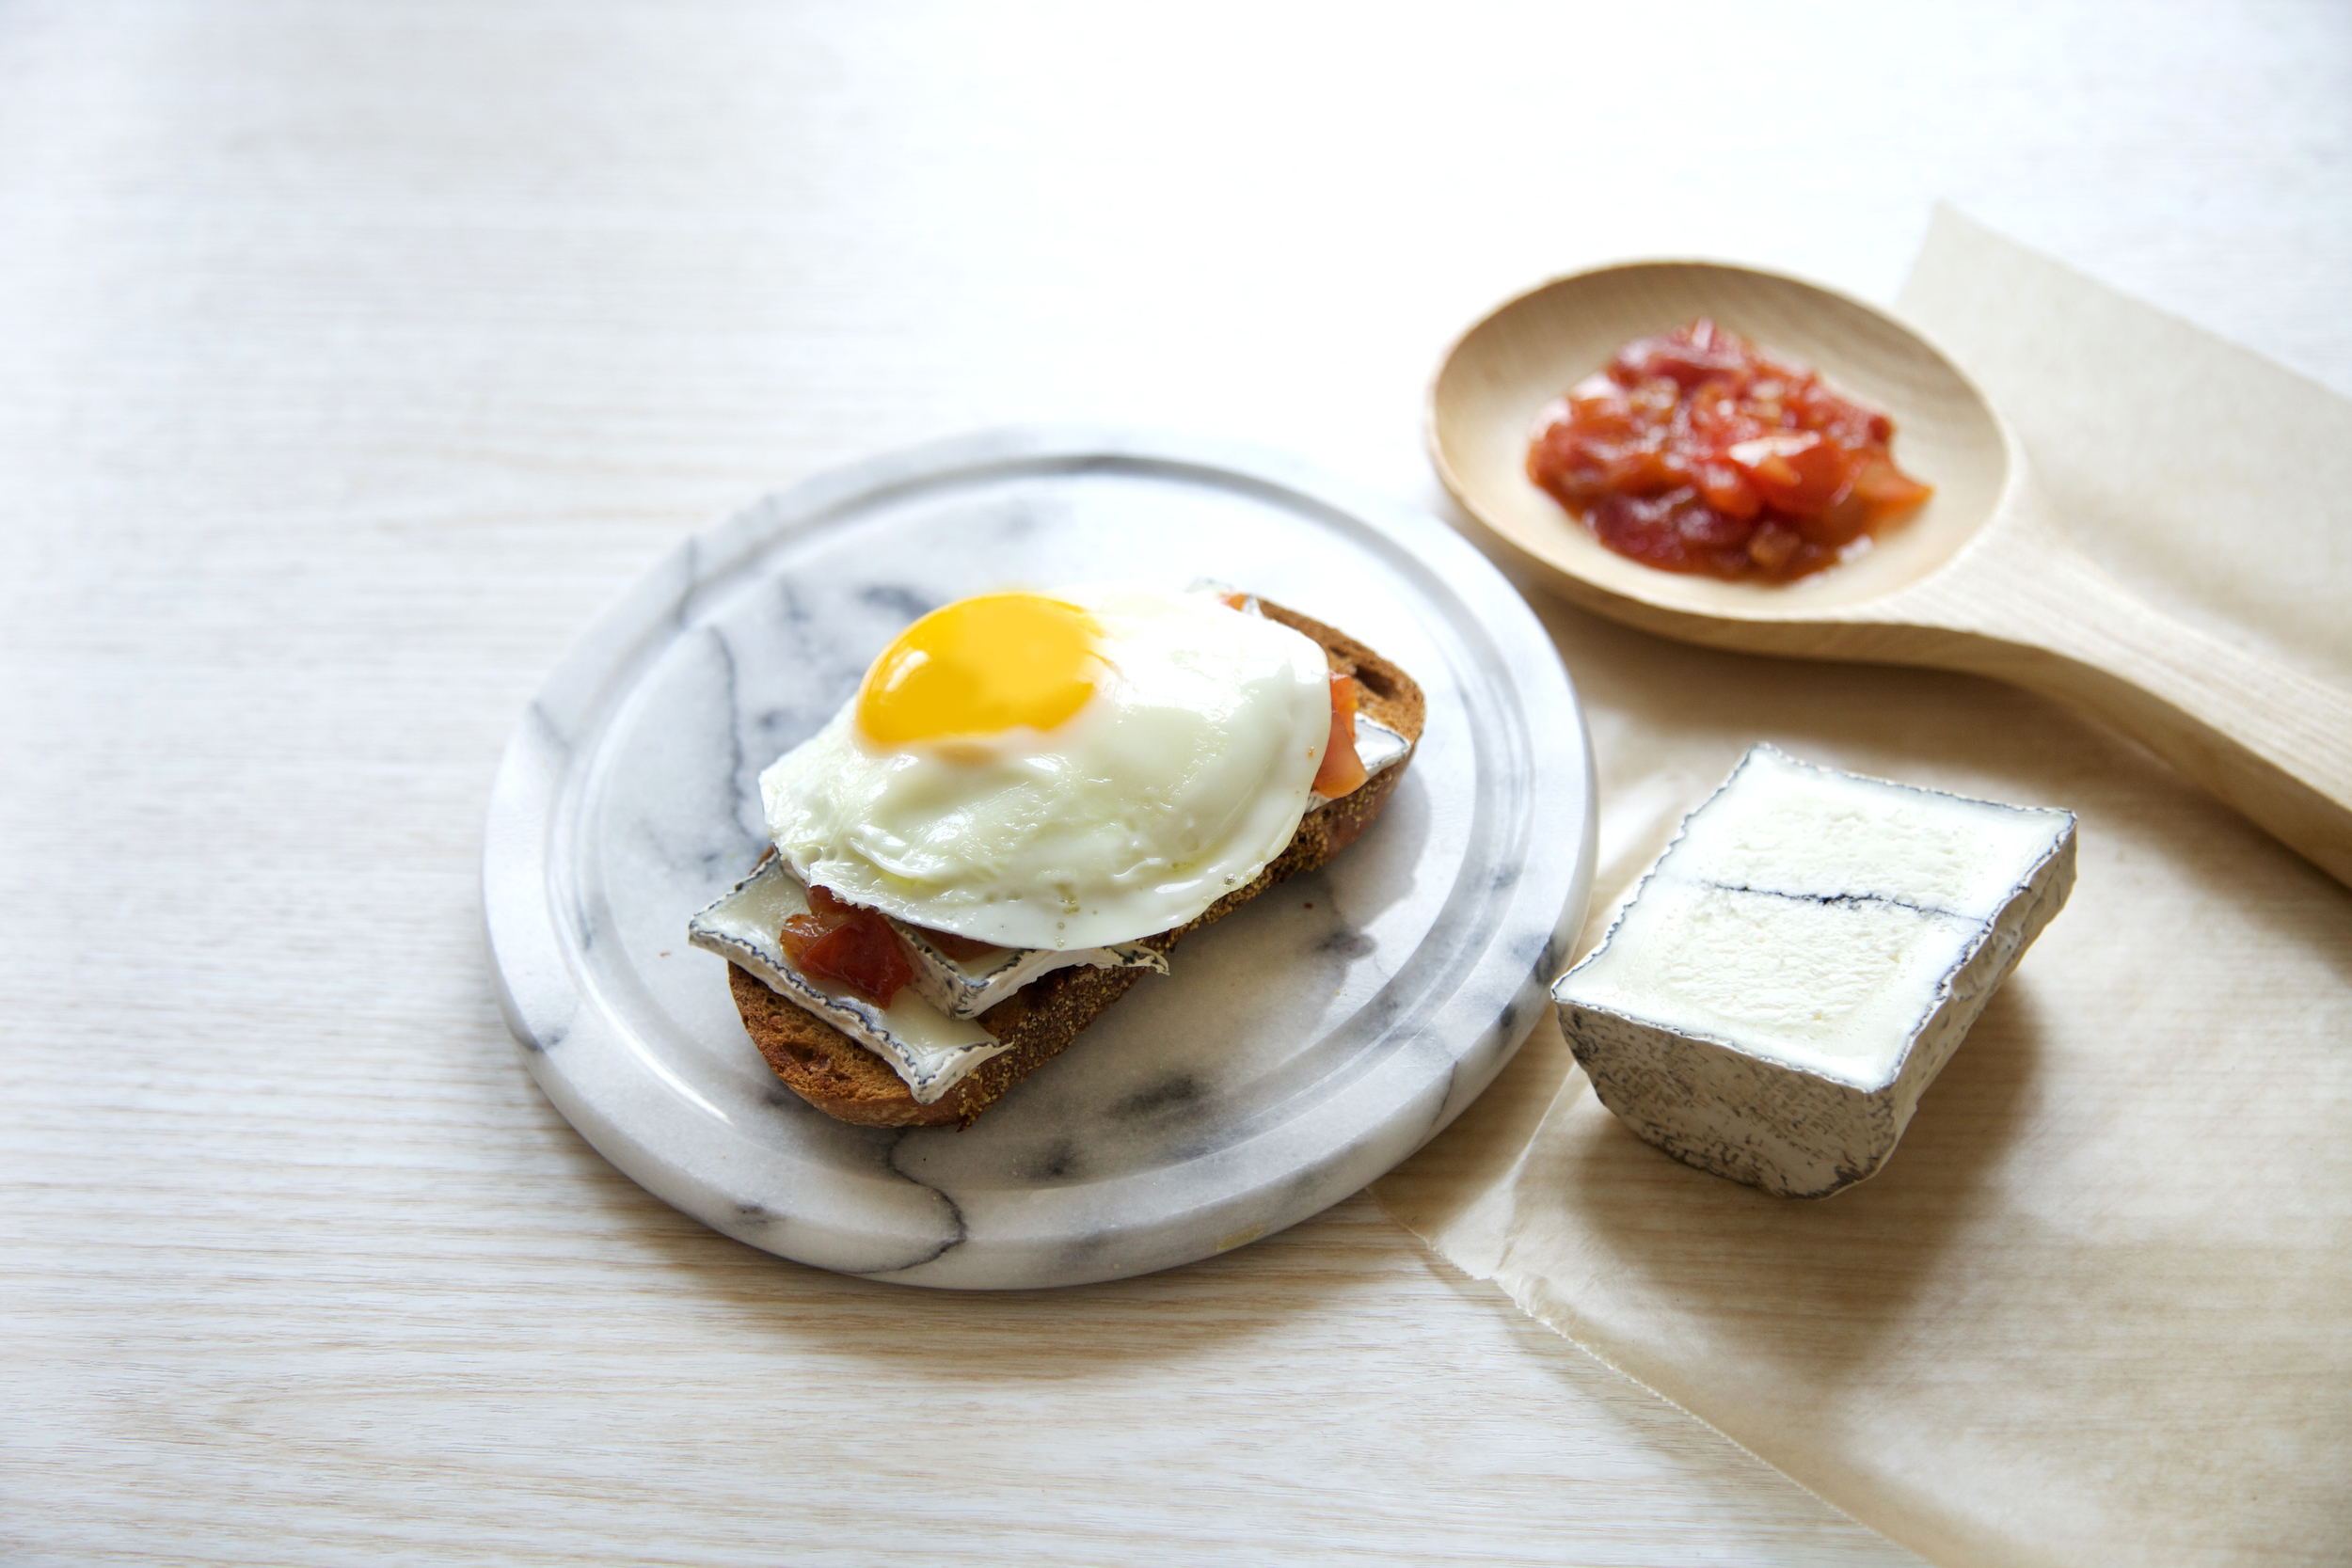 Fried Egg toast with Tomato jam and goat cheese